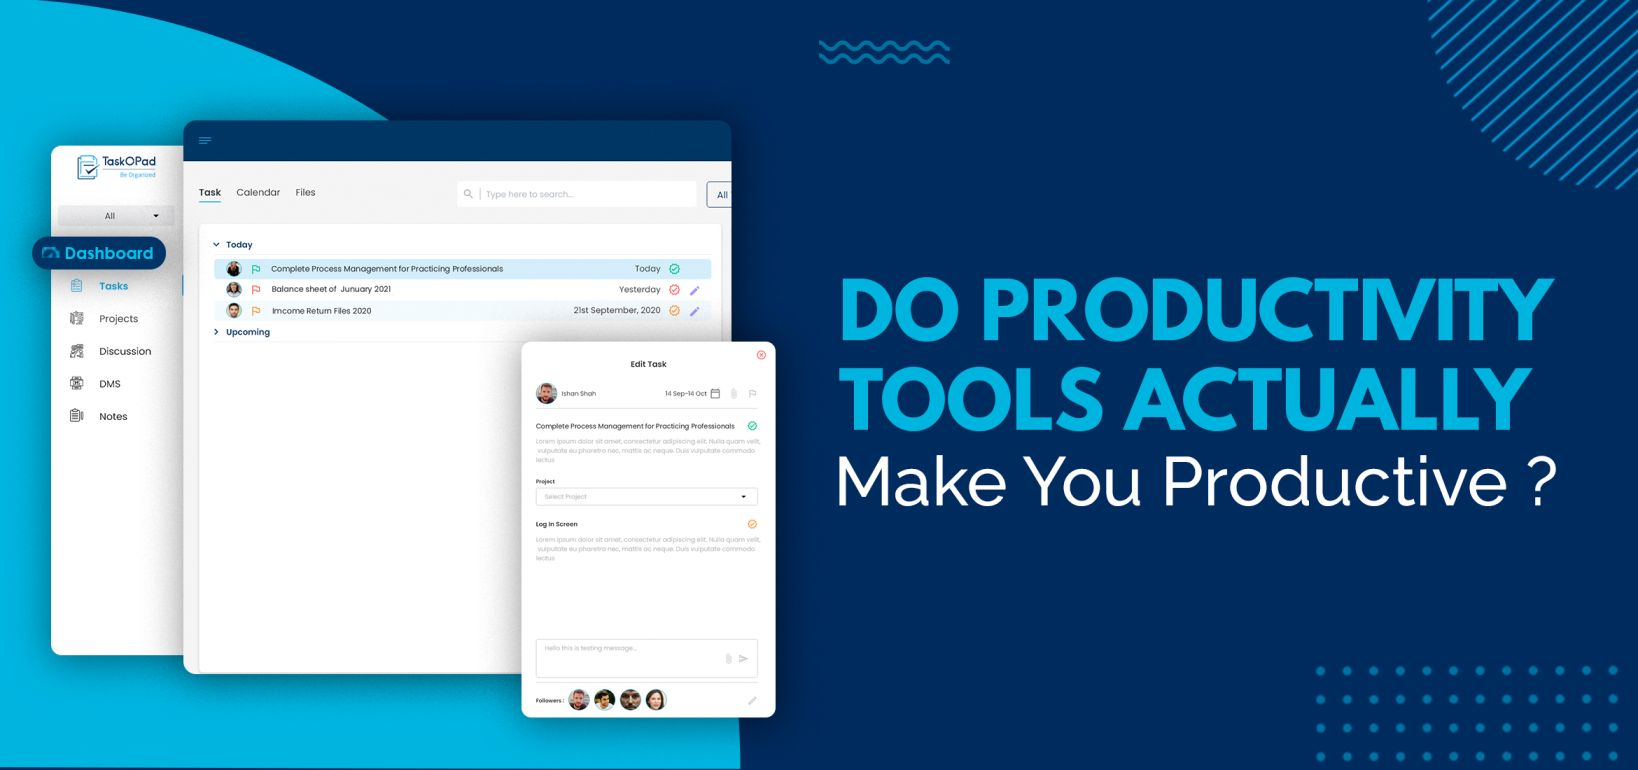 Do Productivity Tools Actually Make You Productive?